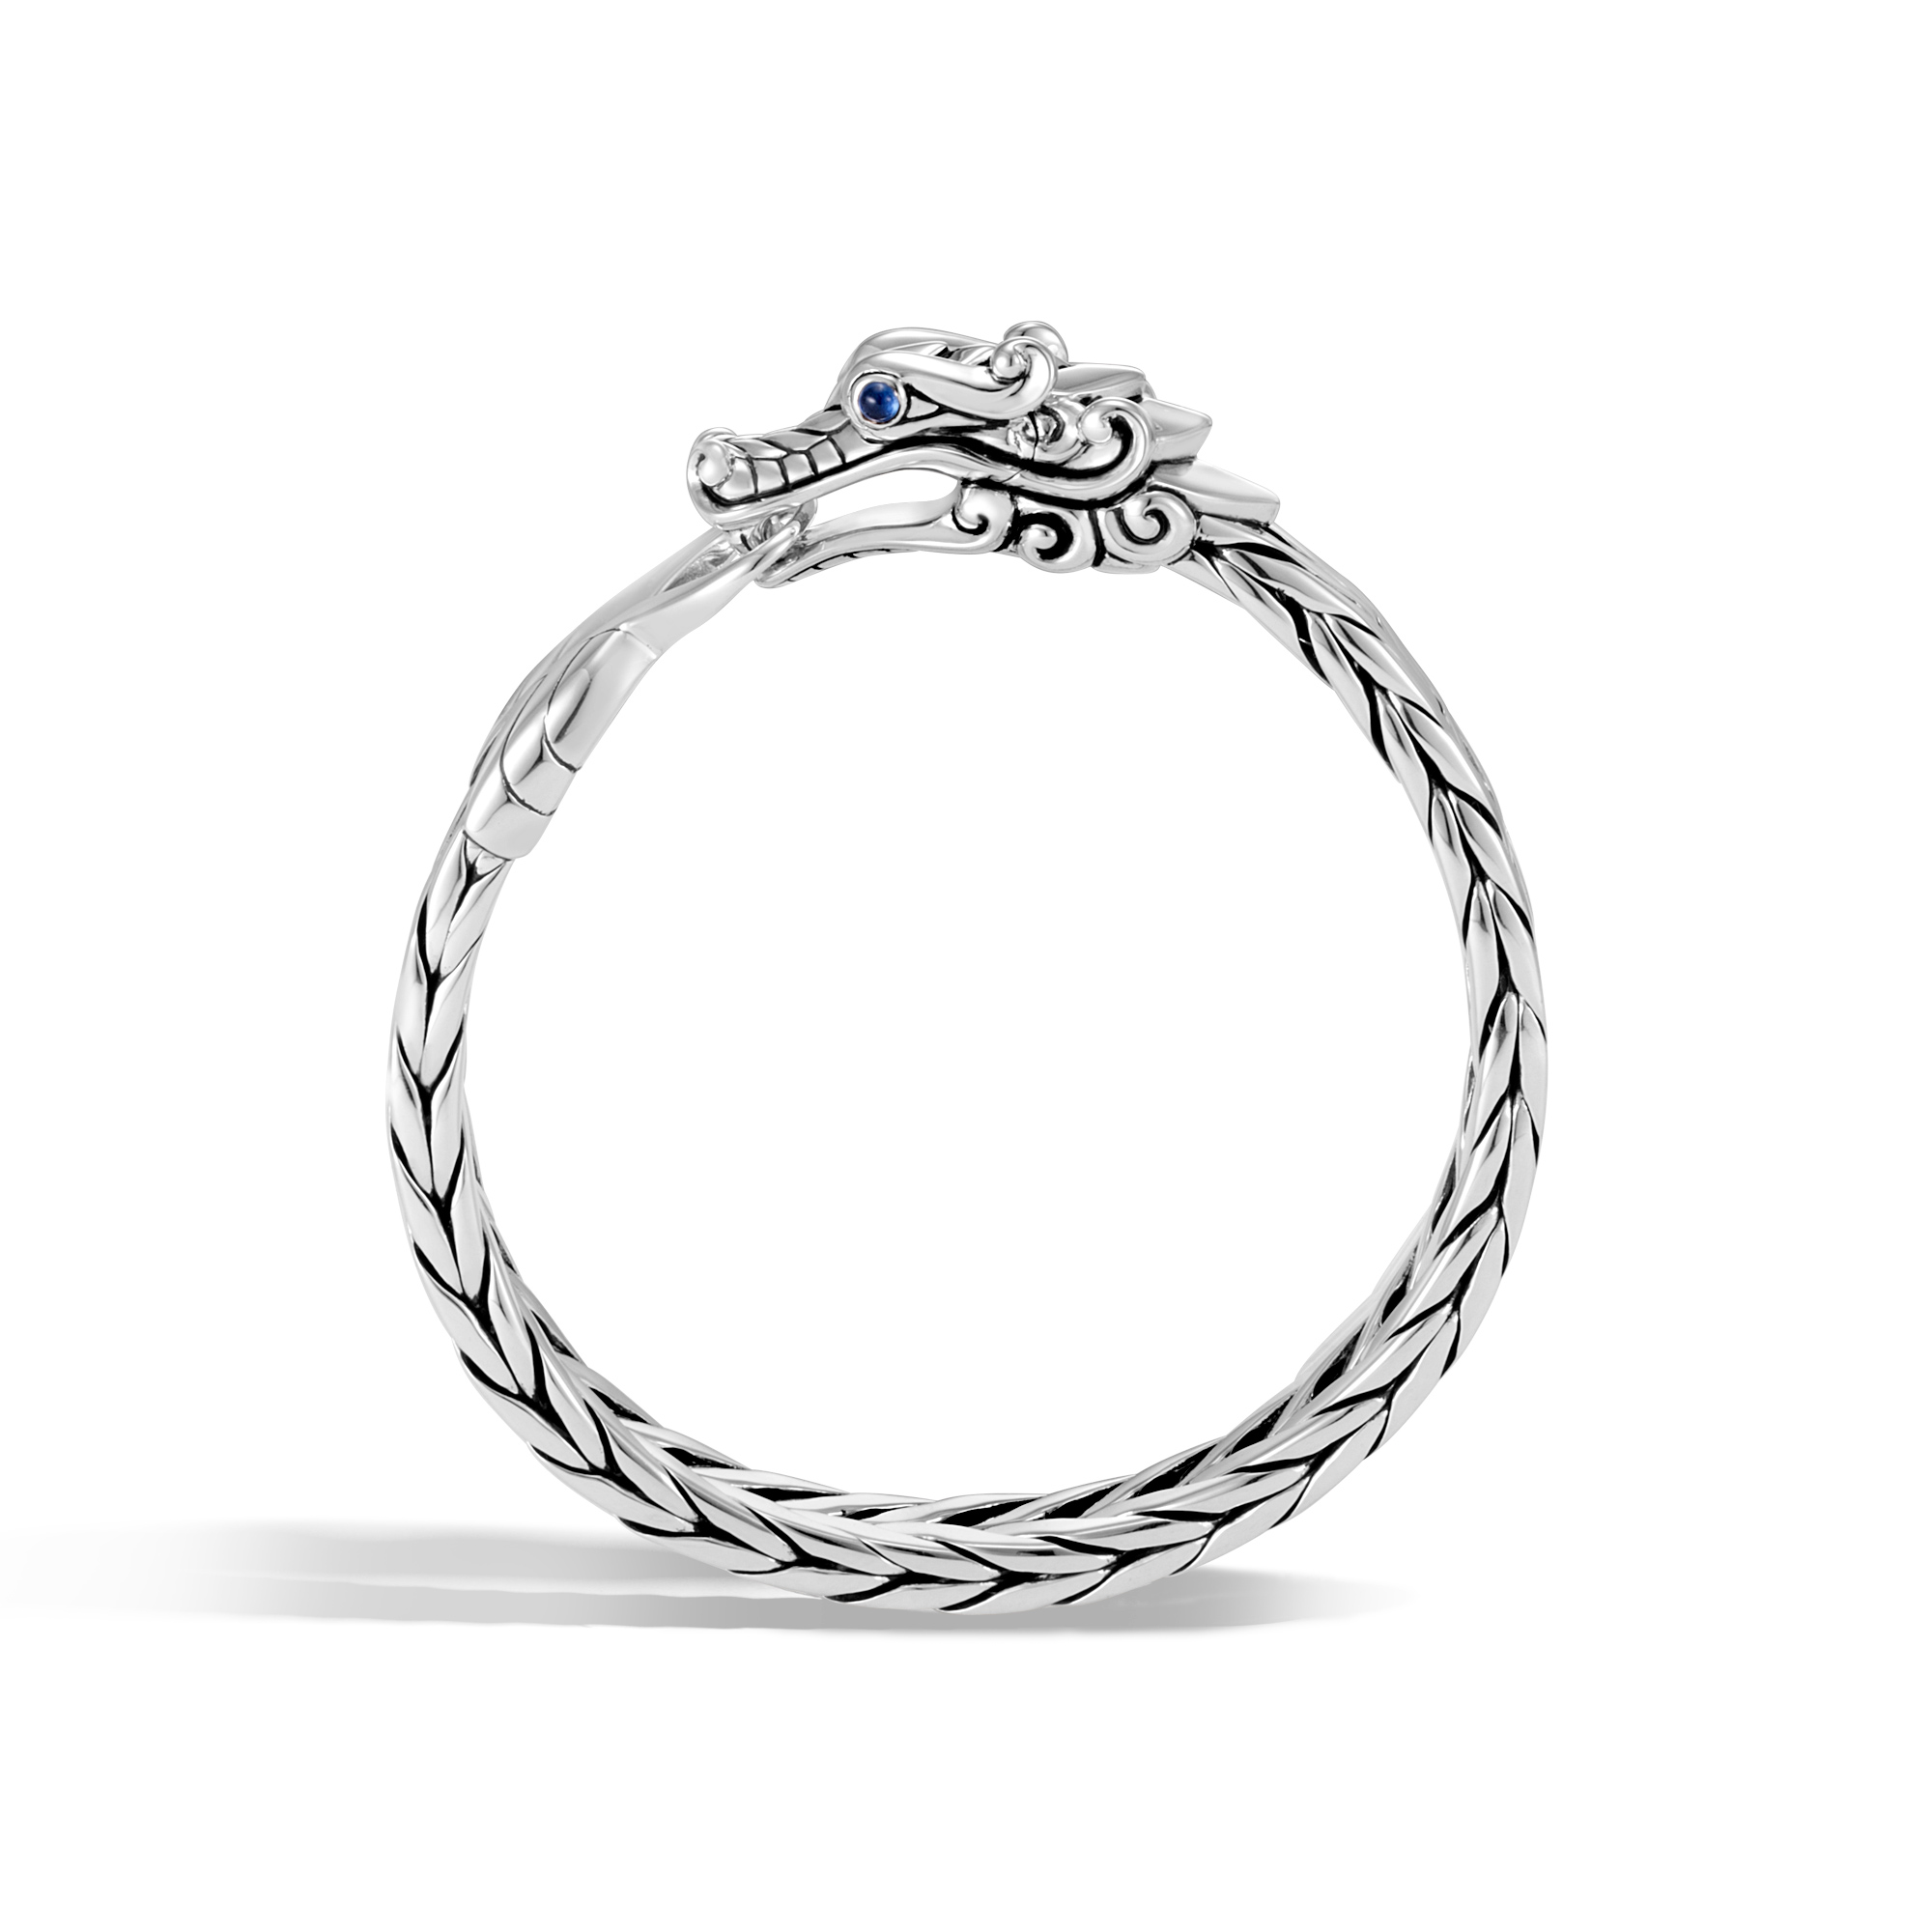 Legends Naga 9.5MM Bracelet in Silver , Blue Sapphire, large